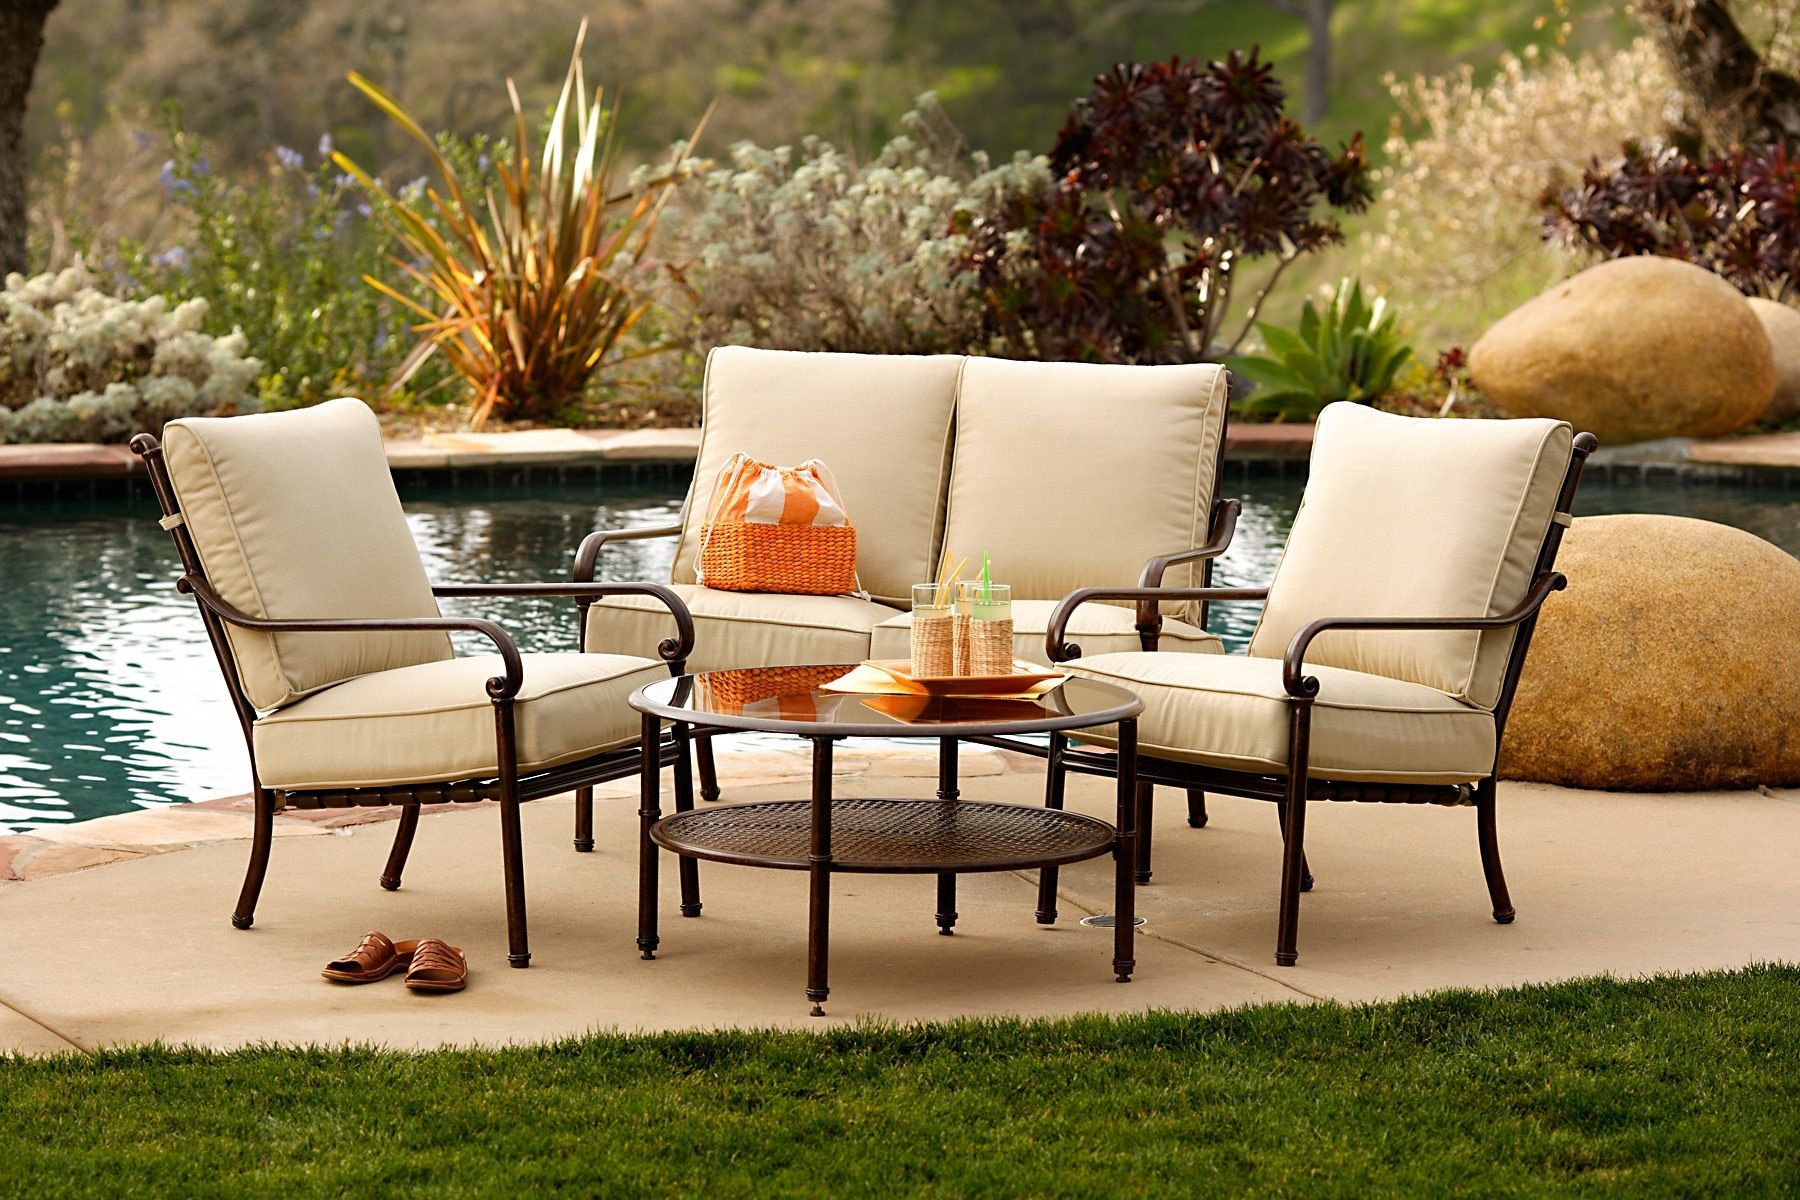 Famous Patio Cool Conversation Sets Patio Furniture Clearance Theydesign Throughout Inexpensive Patio Conversation Sets (View 8 of 20)